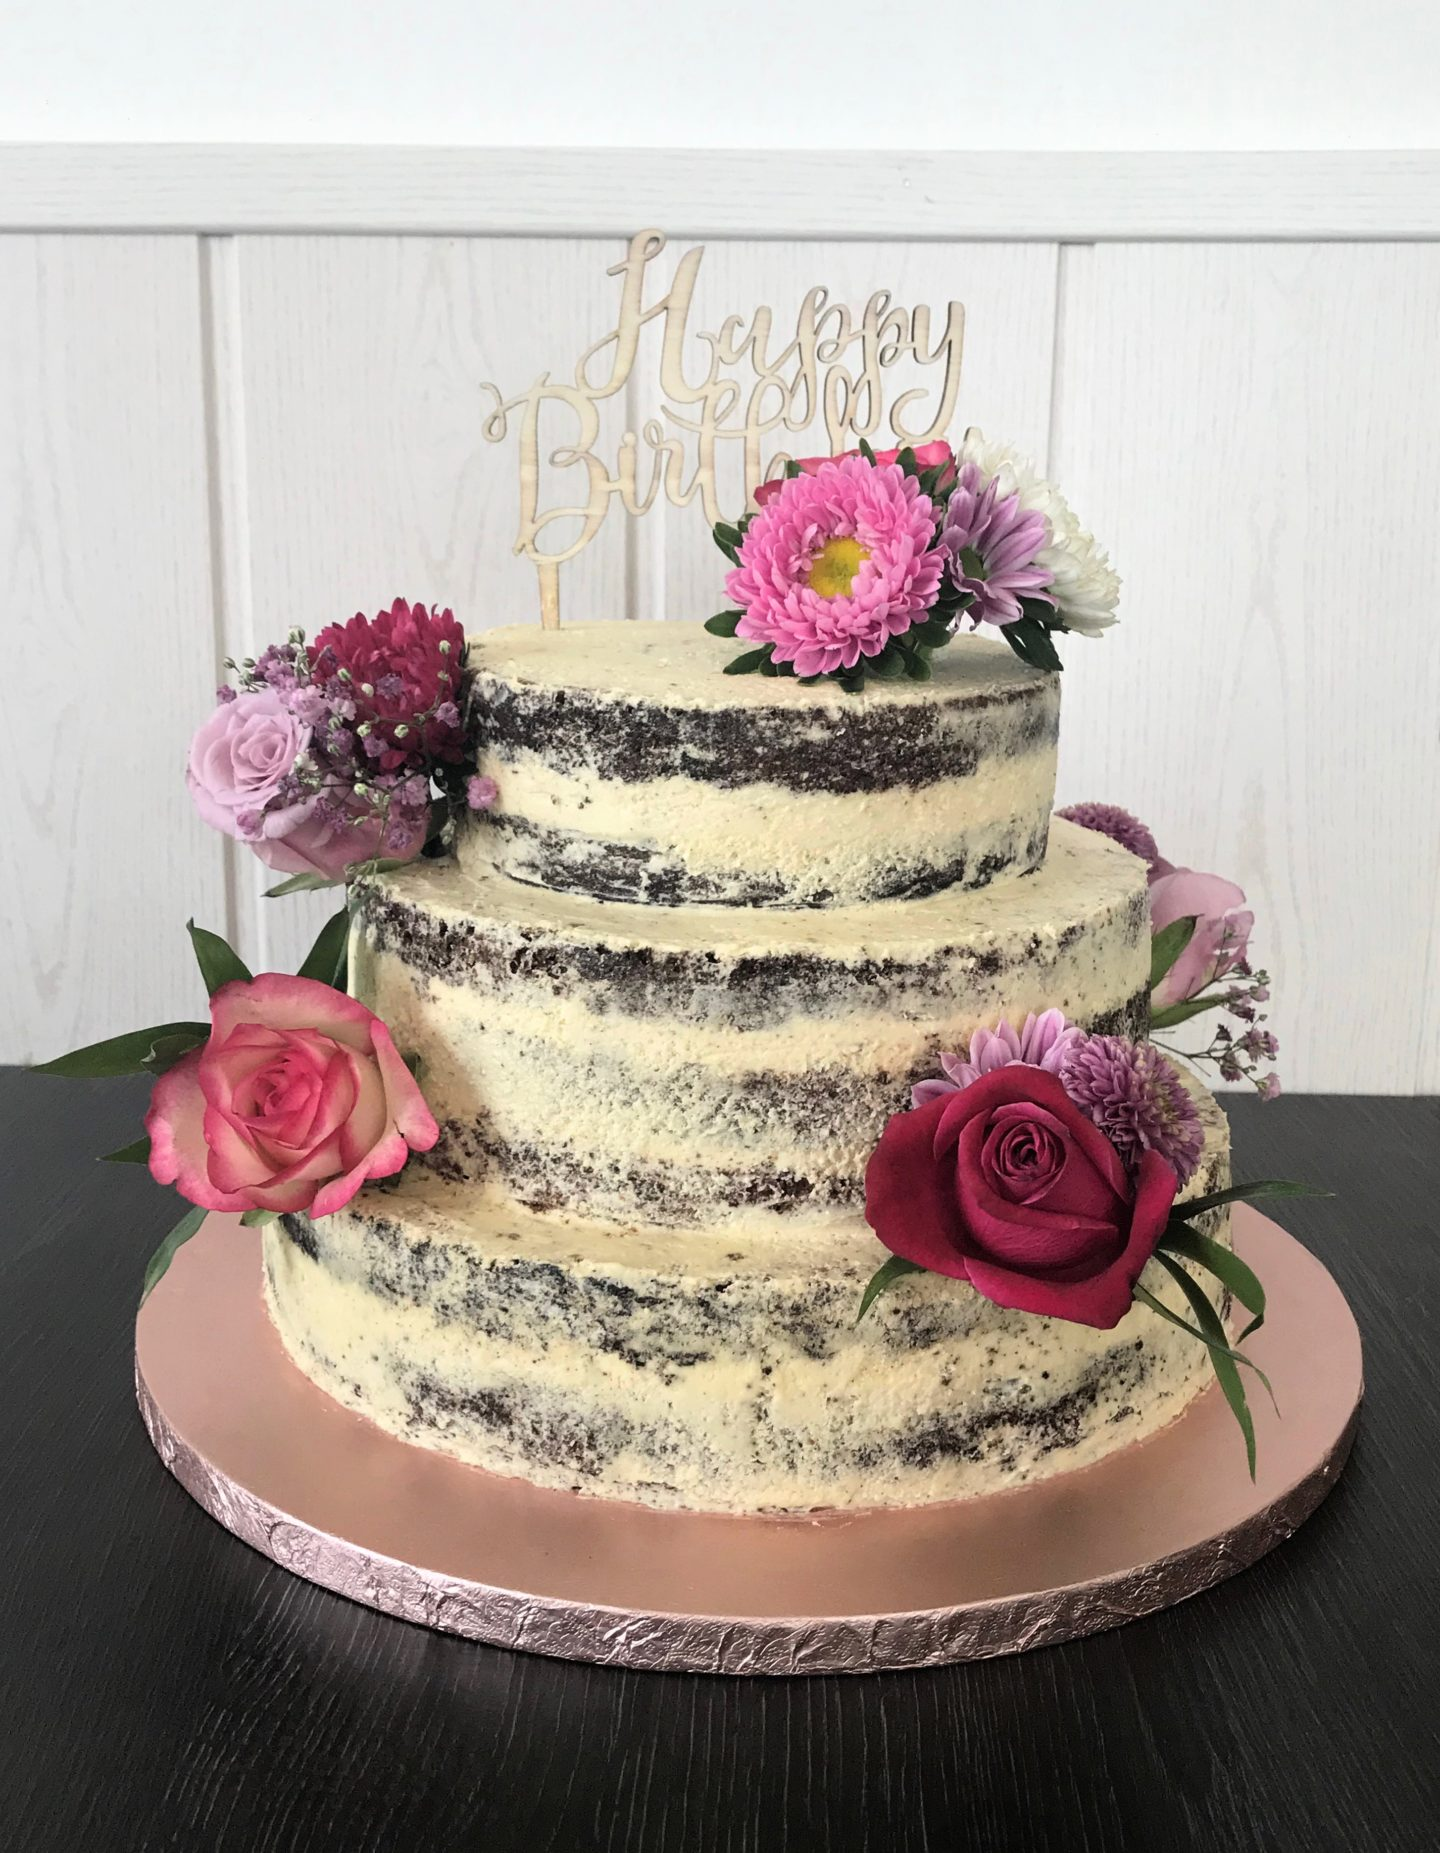 Naked Cake mit Vanille-Kaffee-Swiss Meringue Buttercreme